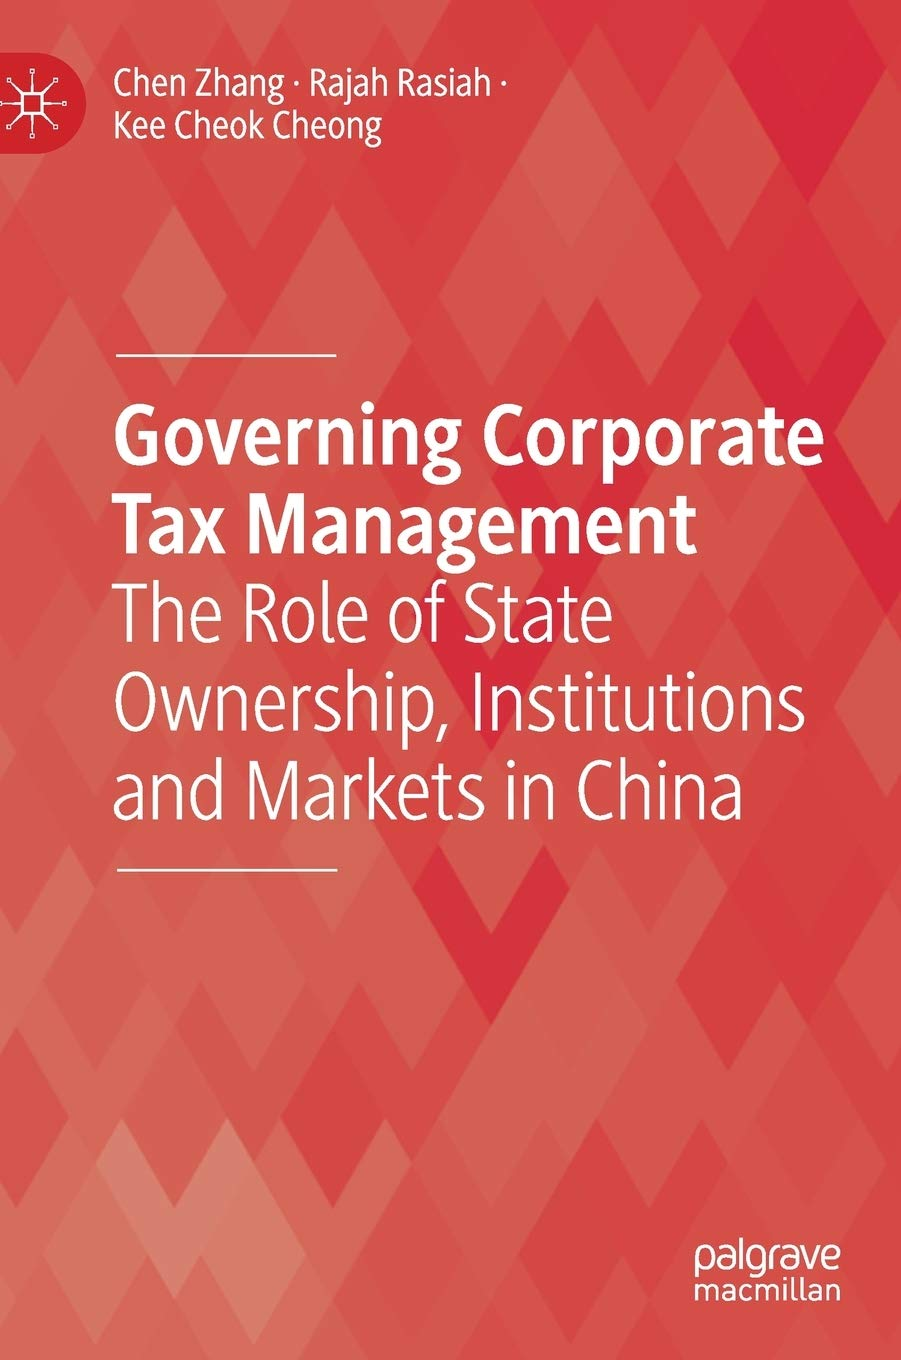 Governing Corporate Tax Management  The Role Of State Ownership Institutions And Markets In China